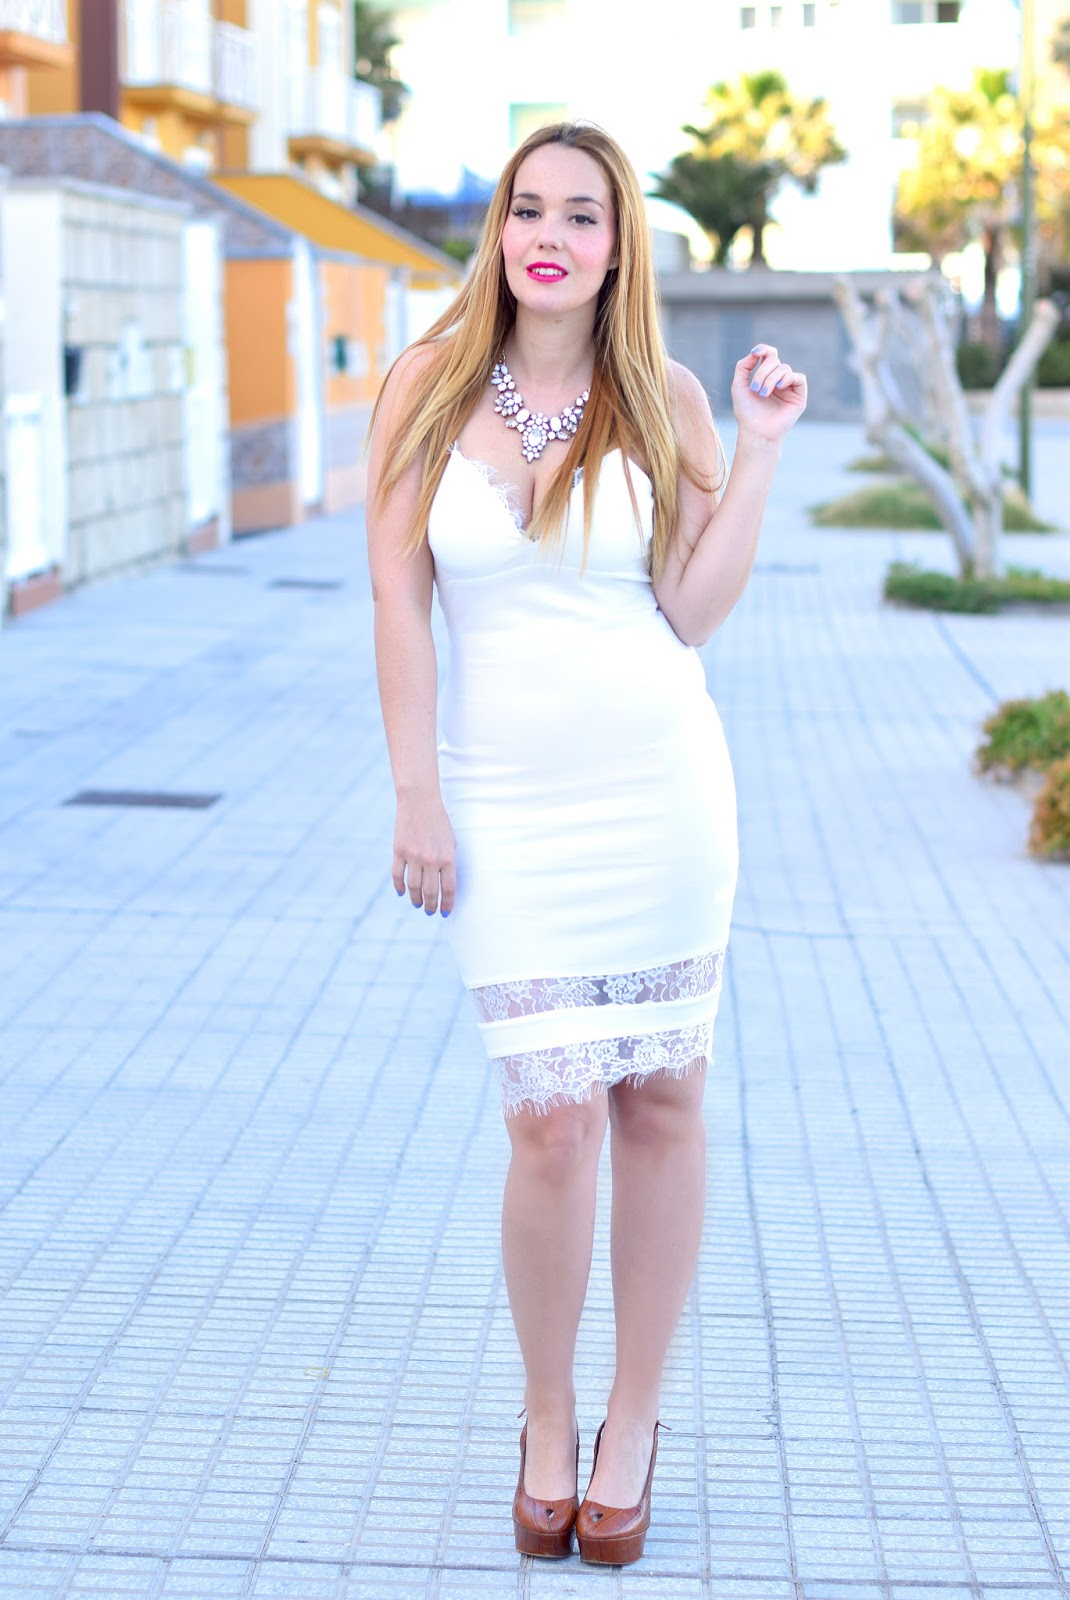 nery hdez, happiness boutique, total white, ax paris, lace dress